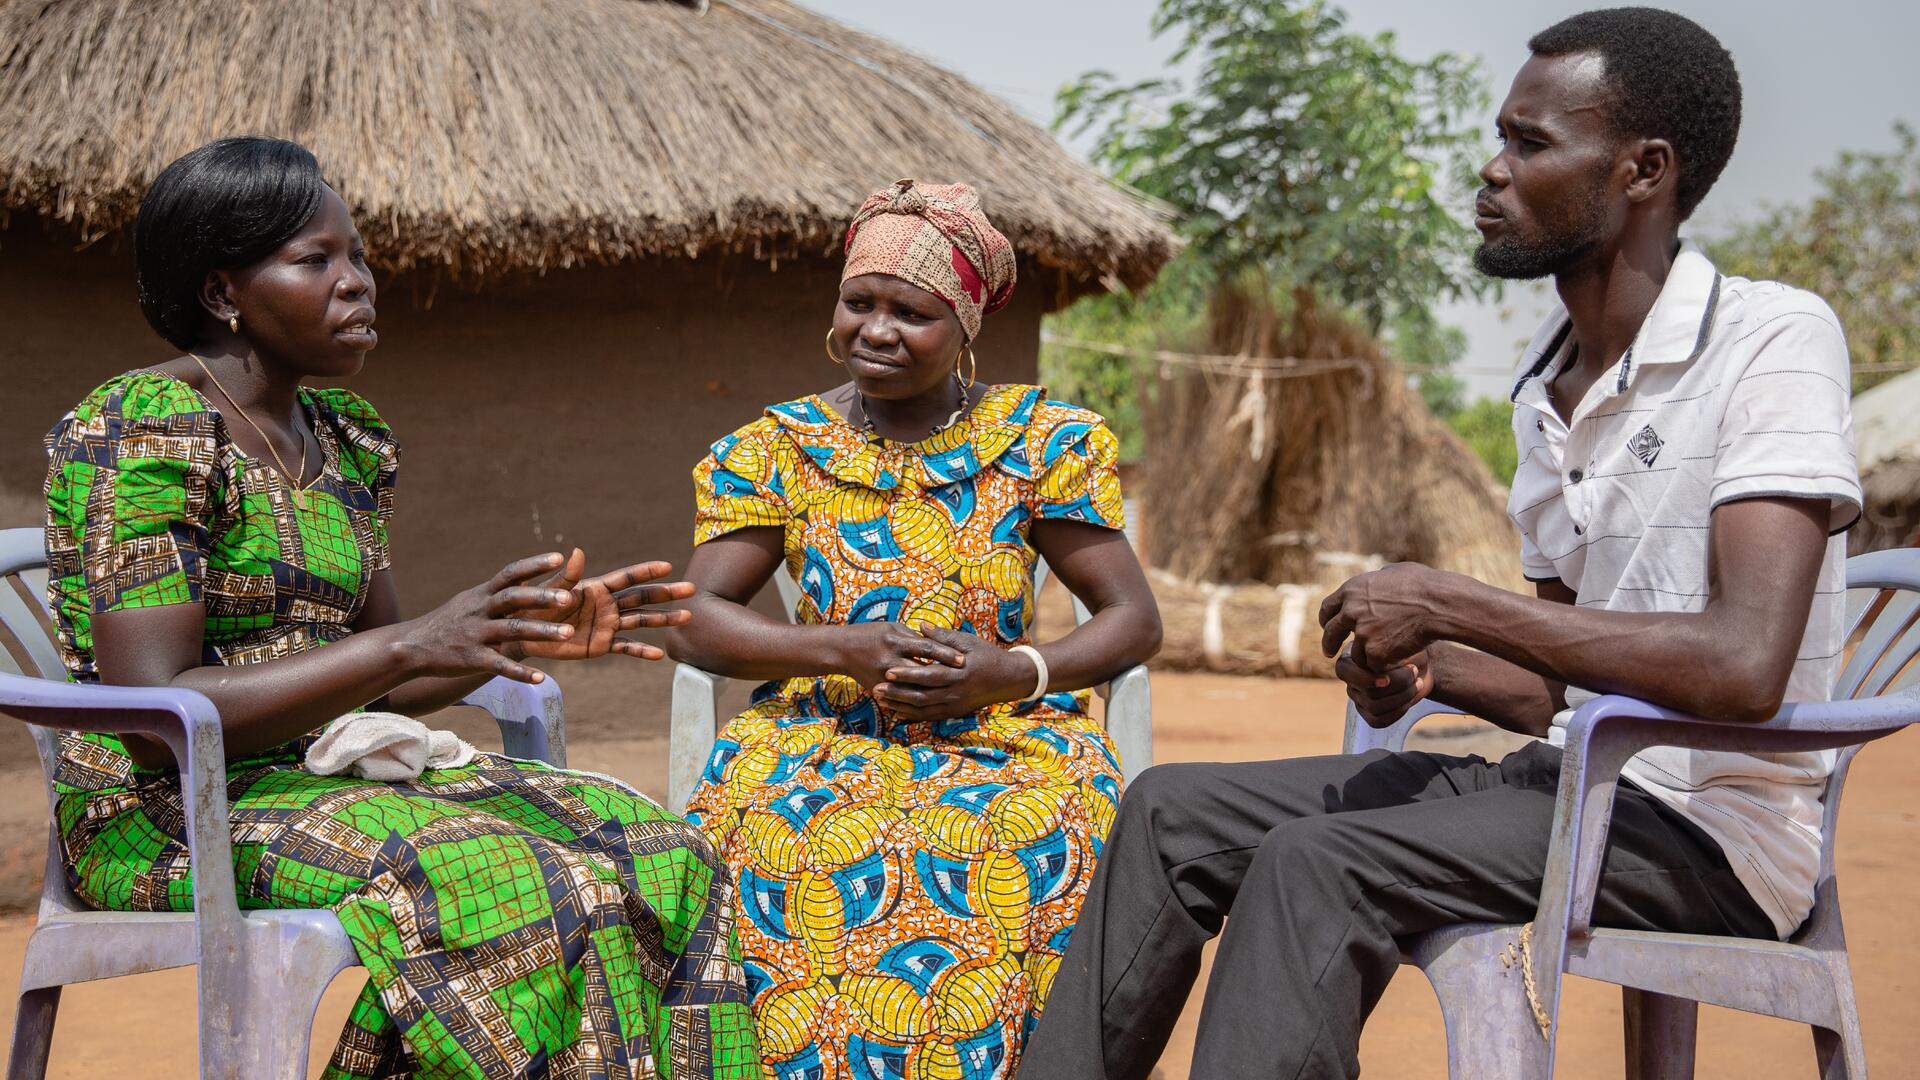 Two members of a women's group sit on plastic chairs outside a house in a Uganda refugee settlement speaking with a man about women's rights